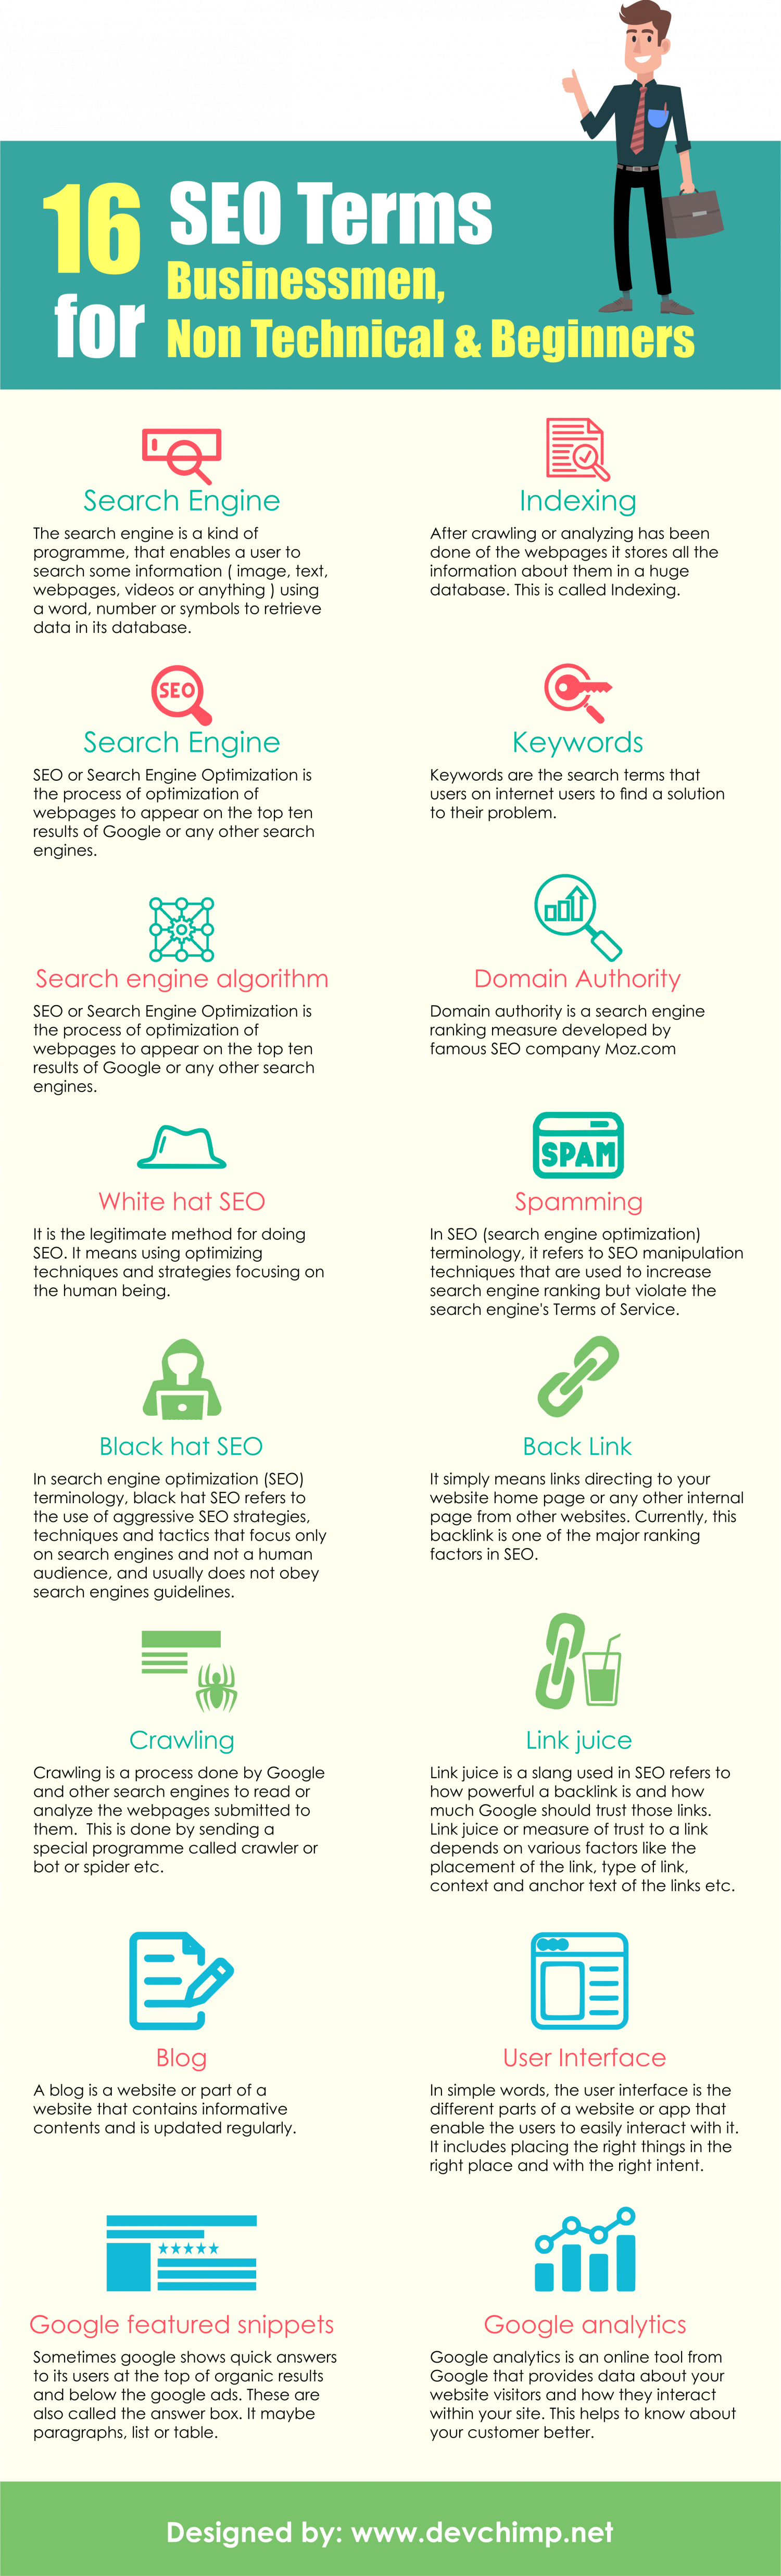 63 SEO Terms for Non-Technical persons Infographic